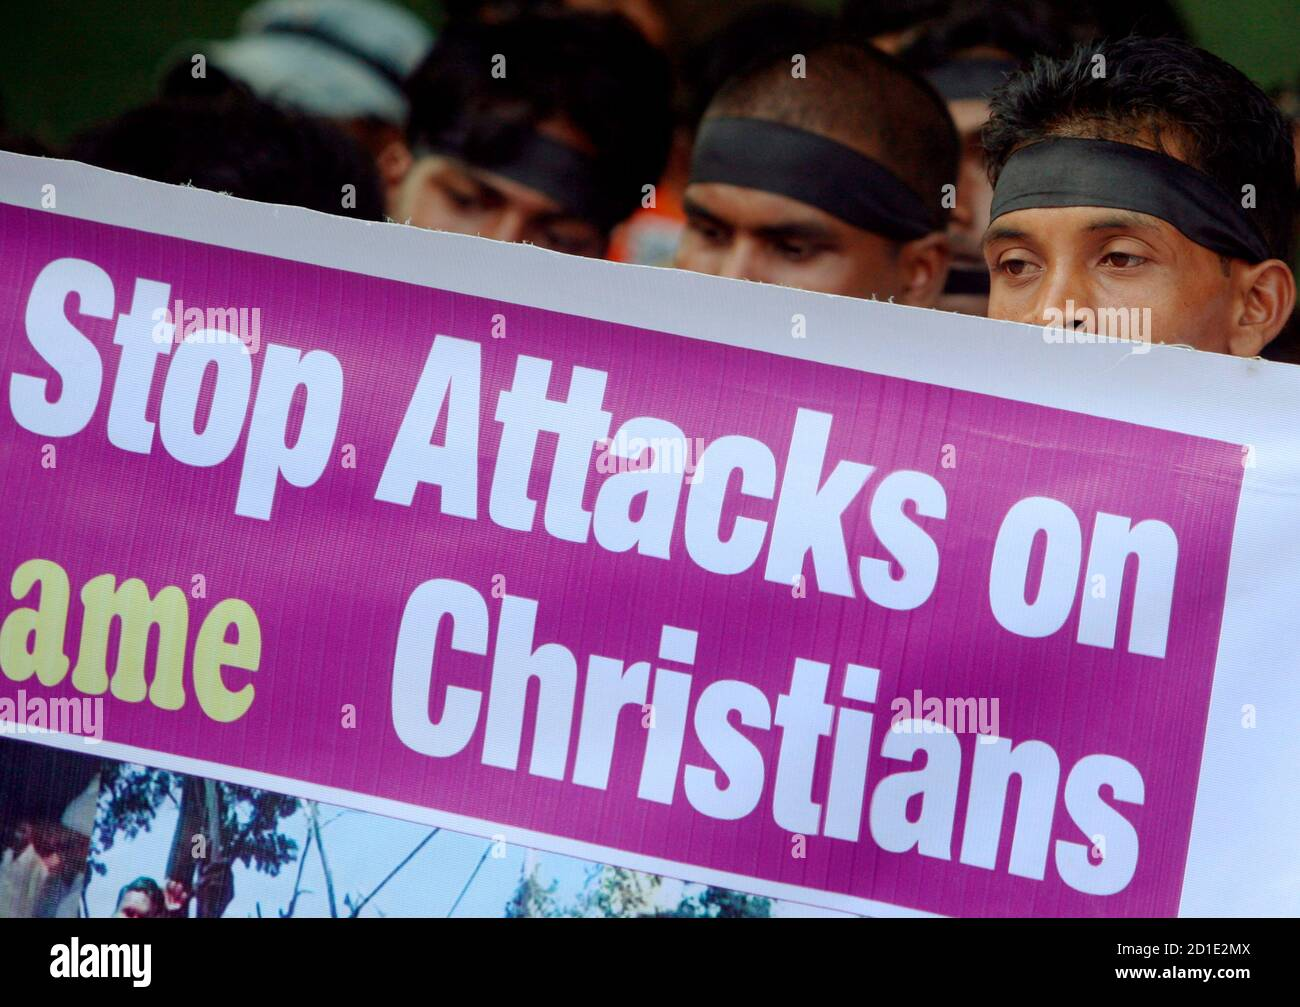 Christians hold a banner during a protest rally in Mumbai October 5, 2008, against the recent violence on Christians in Orissa. Authorities imposed a curfew in several towns in eastern India on Wednesday after fresh attacks by Hindus on Christians as clashes over religious conversions spread, officials said. A string of attacks on Christians in three states has killed at least 34 people and forced thousands to flee to government camps or hide in forests. The troubles have been sparked by controversial conversion campaigns by Christian groups in poor tribal areas.  REUTERS/Punit Paranjpe (INDIA Stock Photo